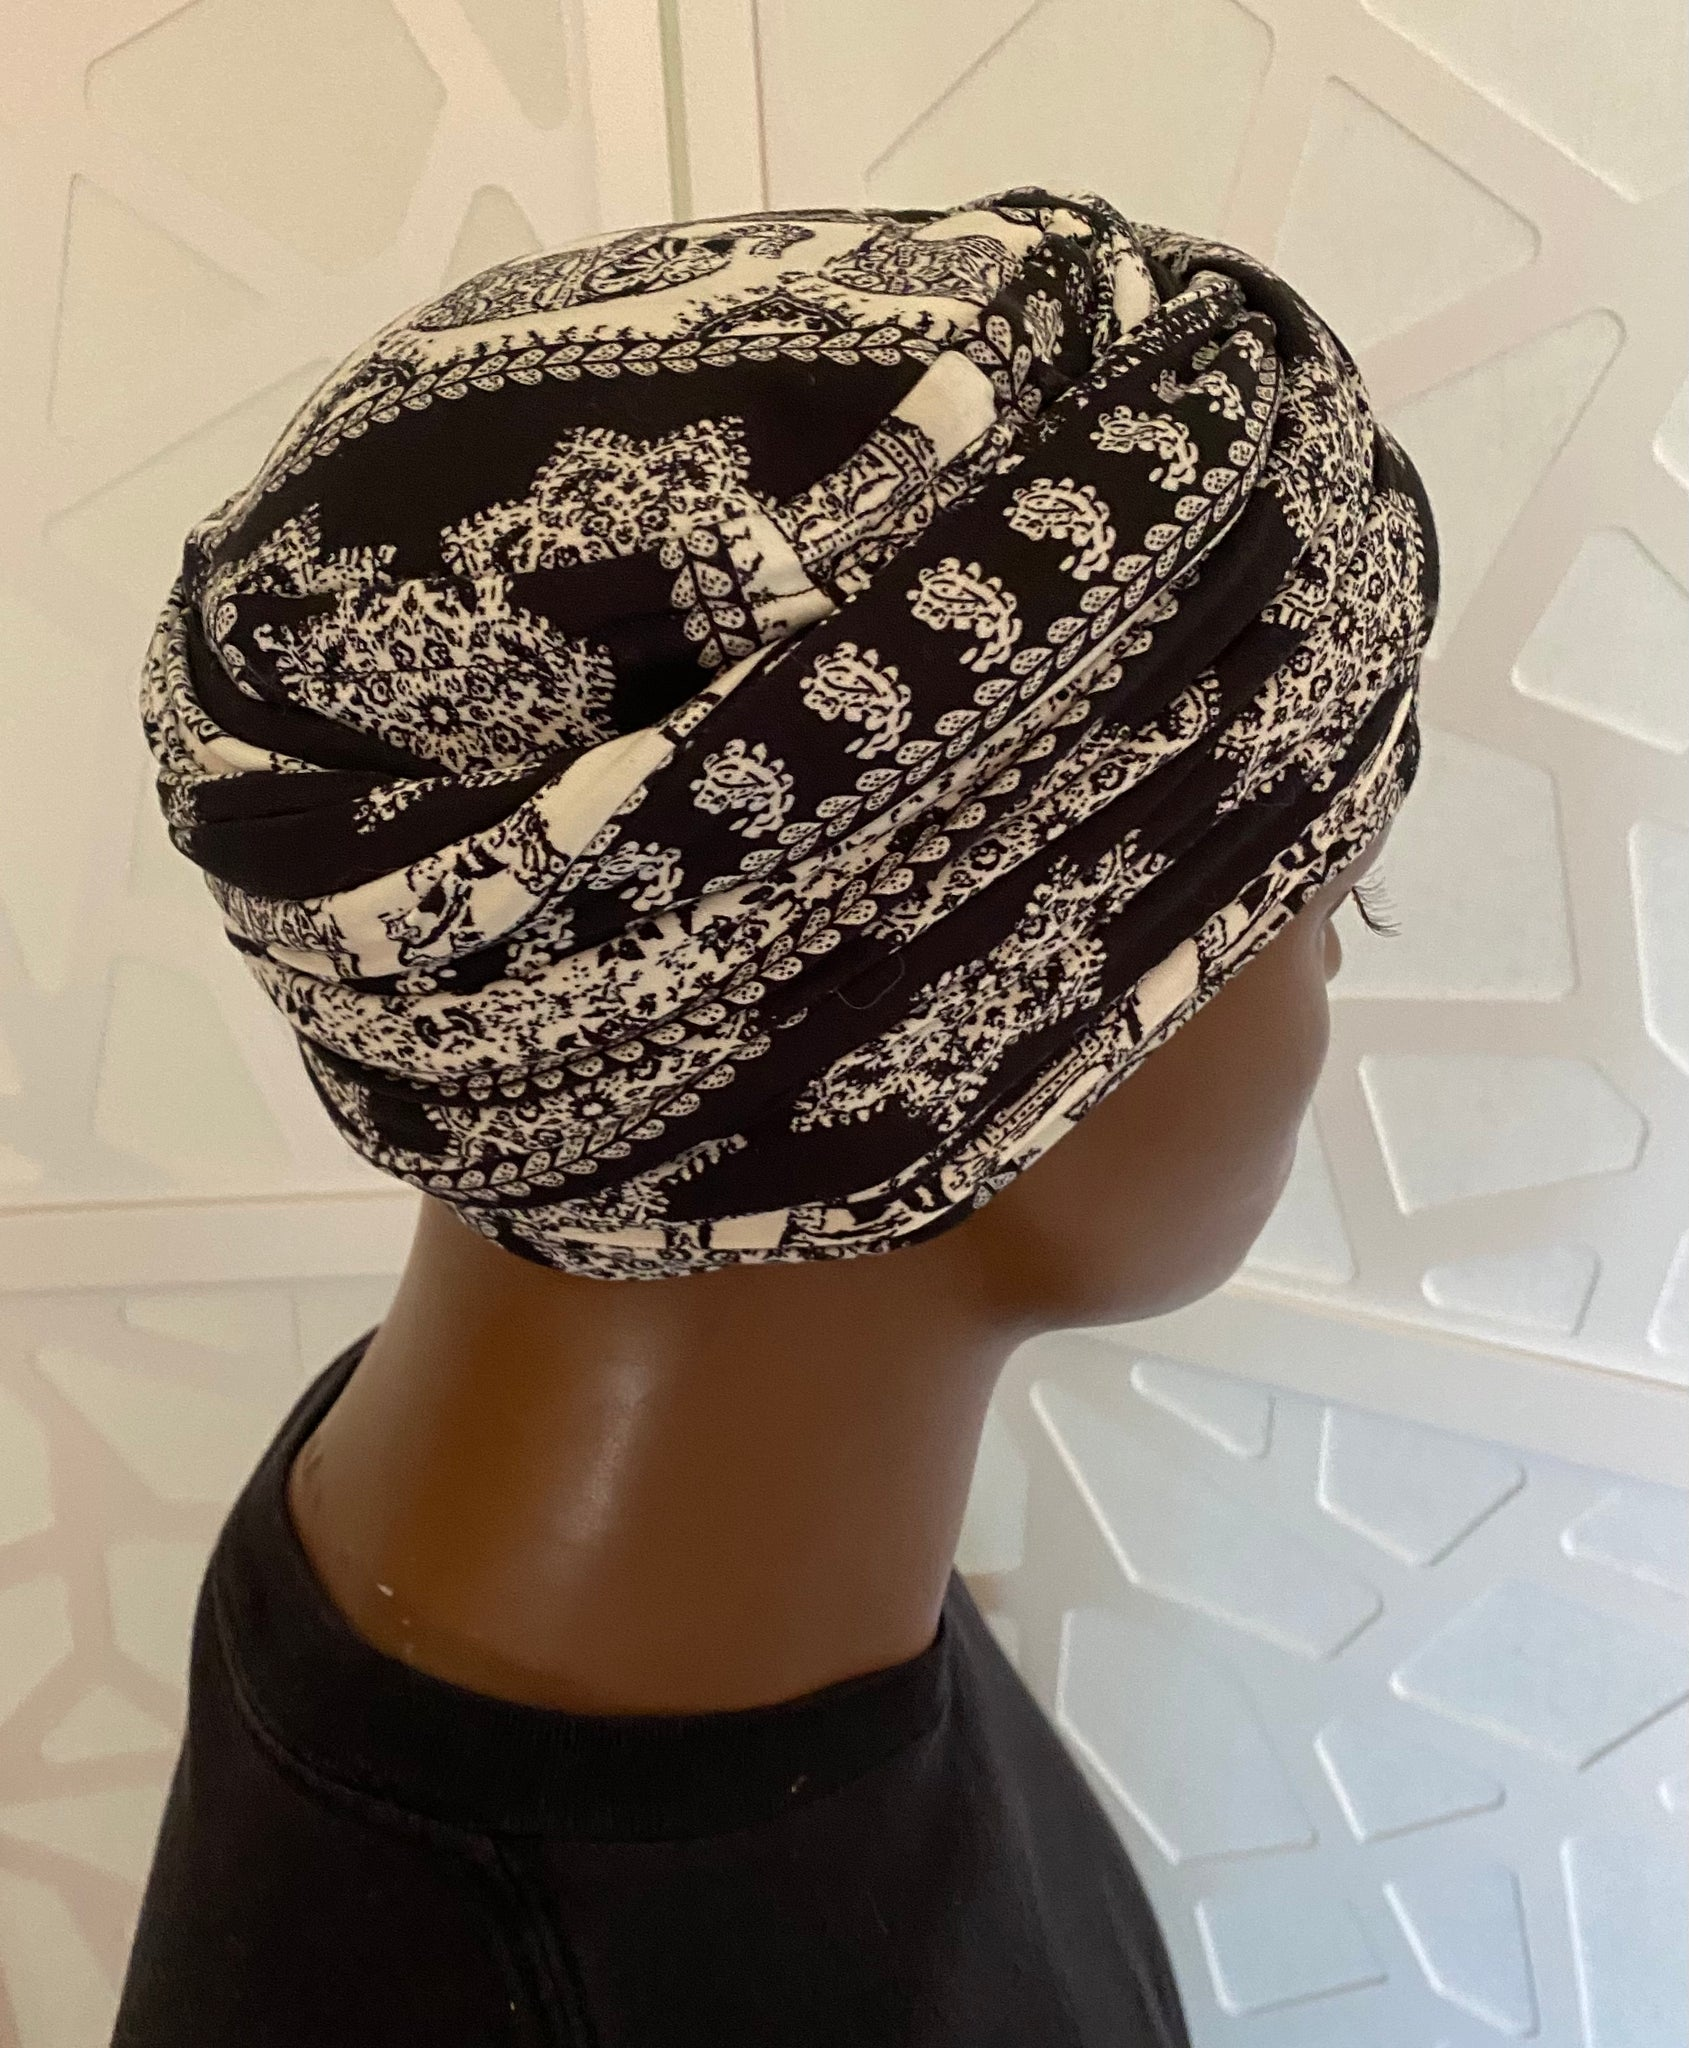 Black N White Elephant EZ PZ Turban Wrap